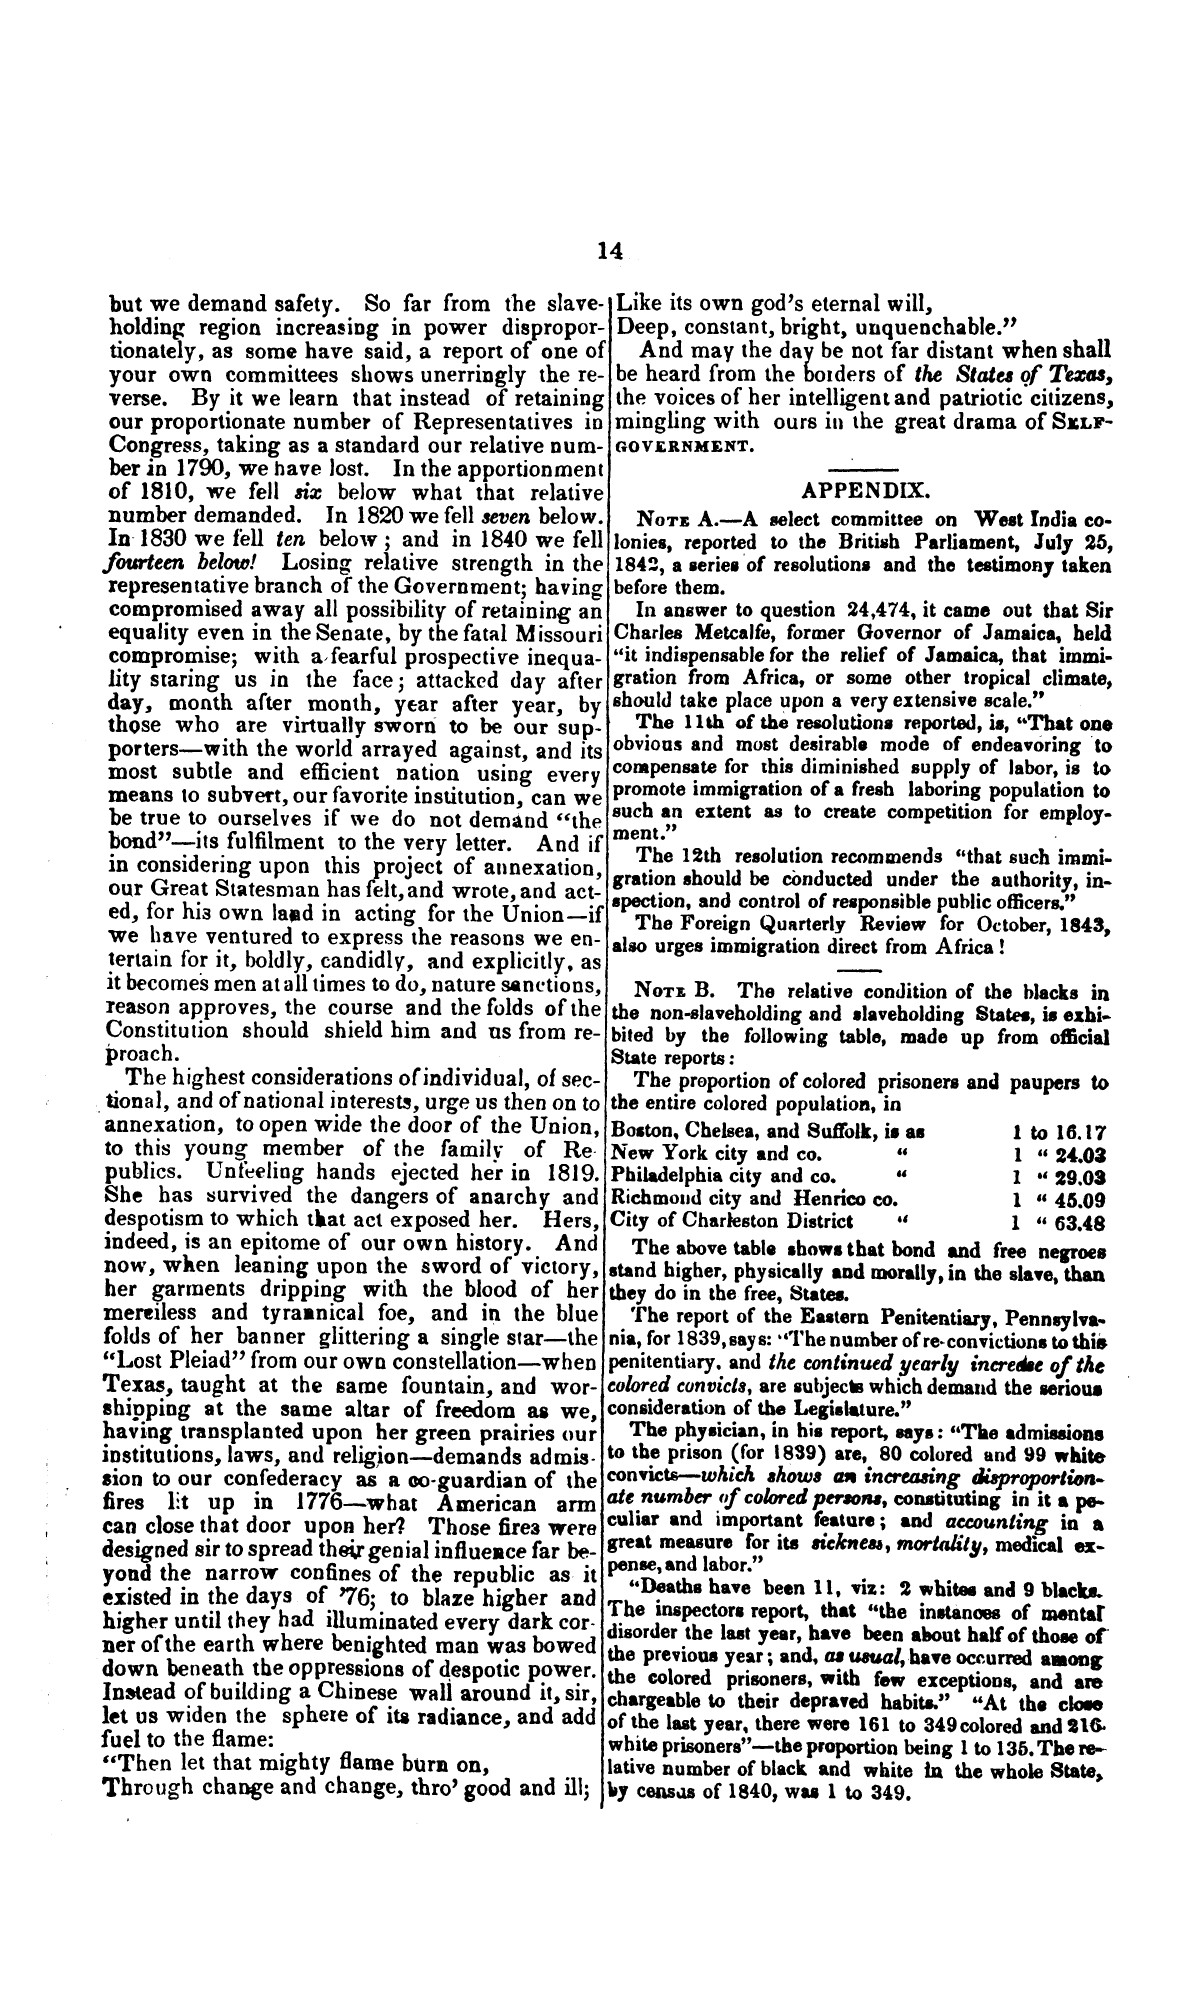 Speech of Hon. Wm. Lowndes Yancey, of Alabama, on the annexation of Texas to the United States, delivered in the House of Representatives, Jan. 7, 1845.                                                                                                      [Sequence #]: 14 of 14